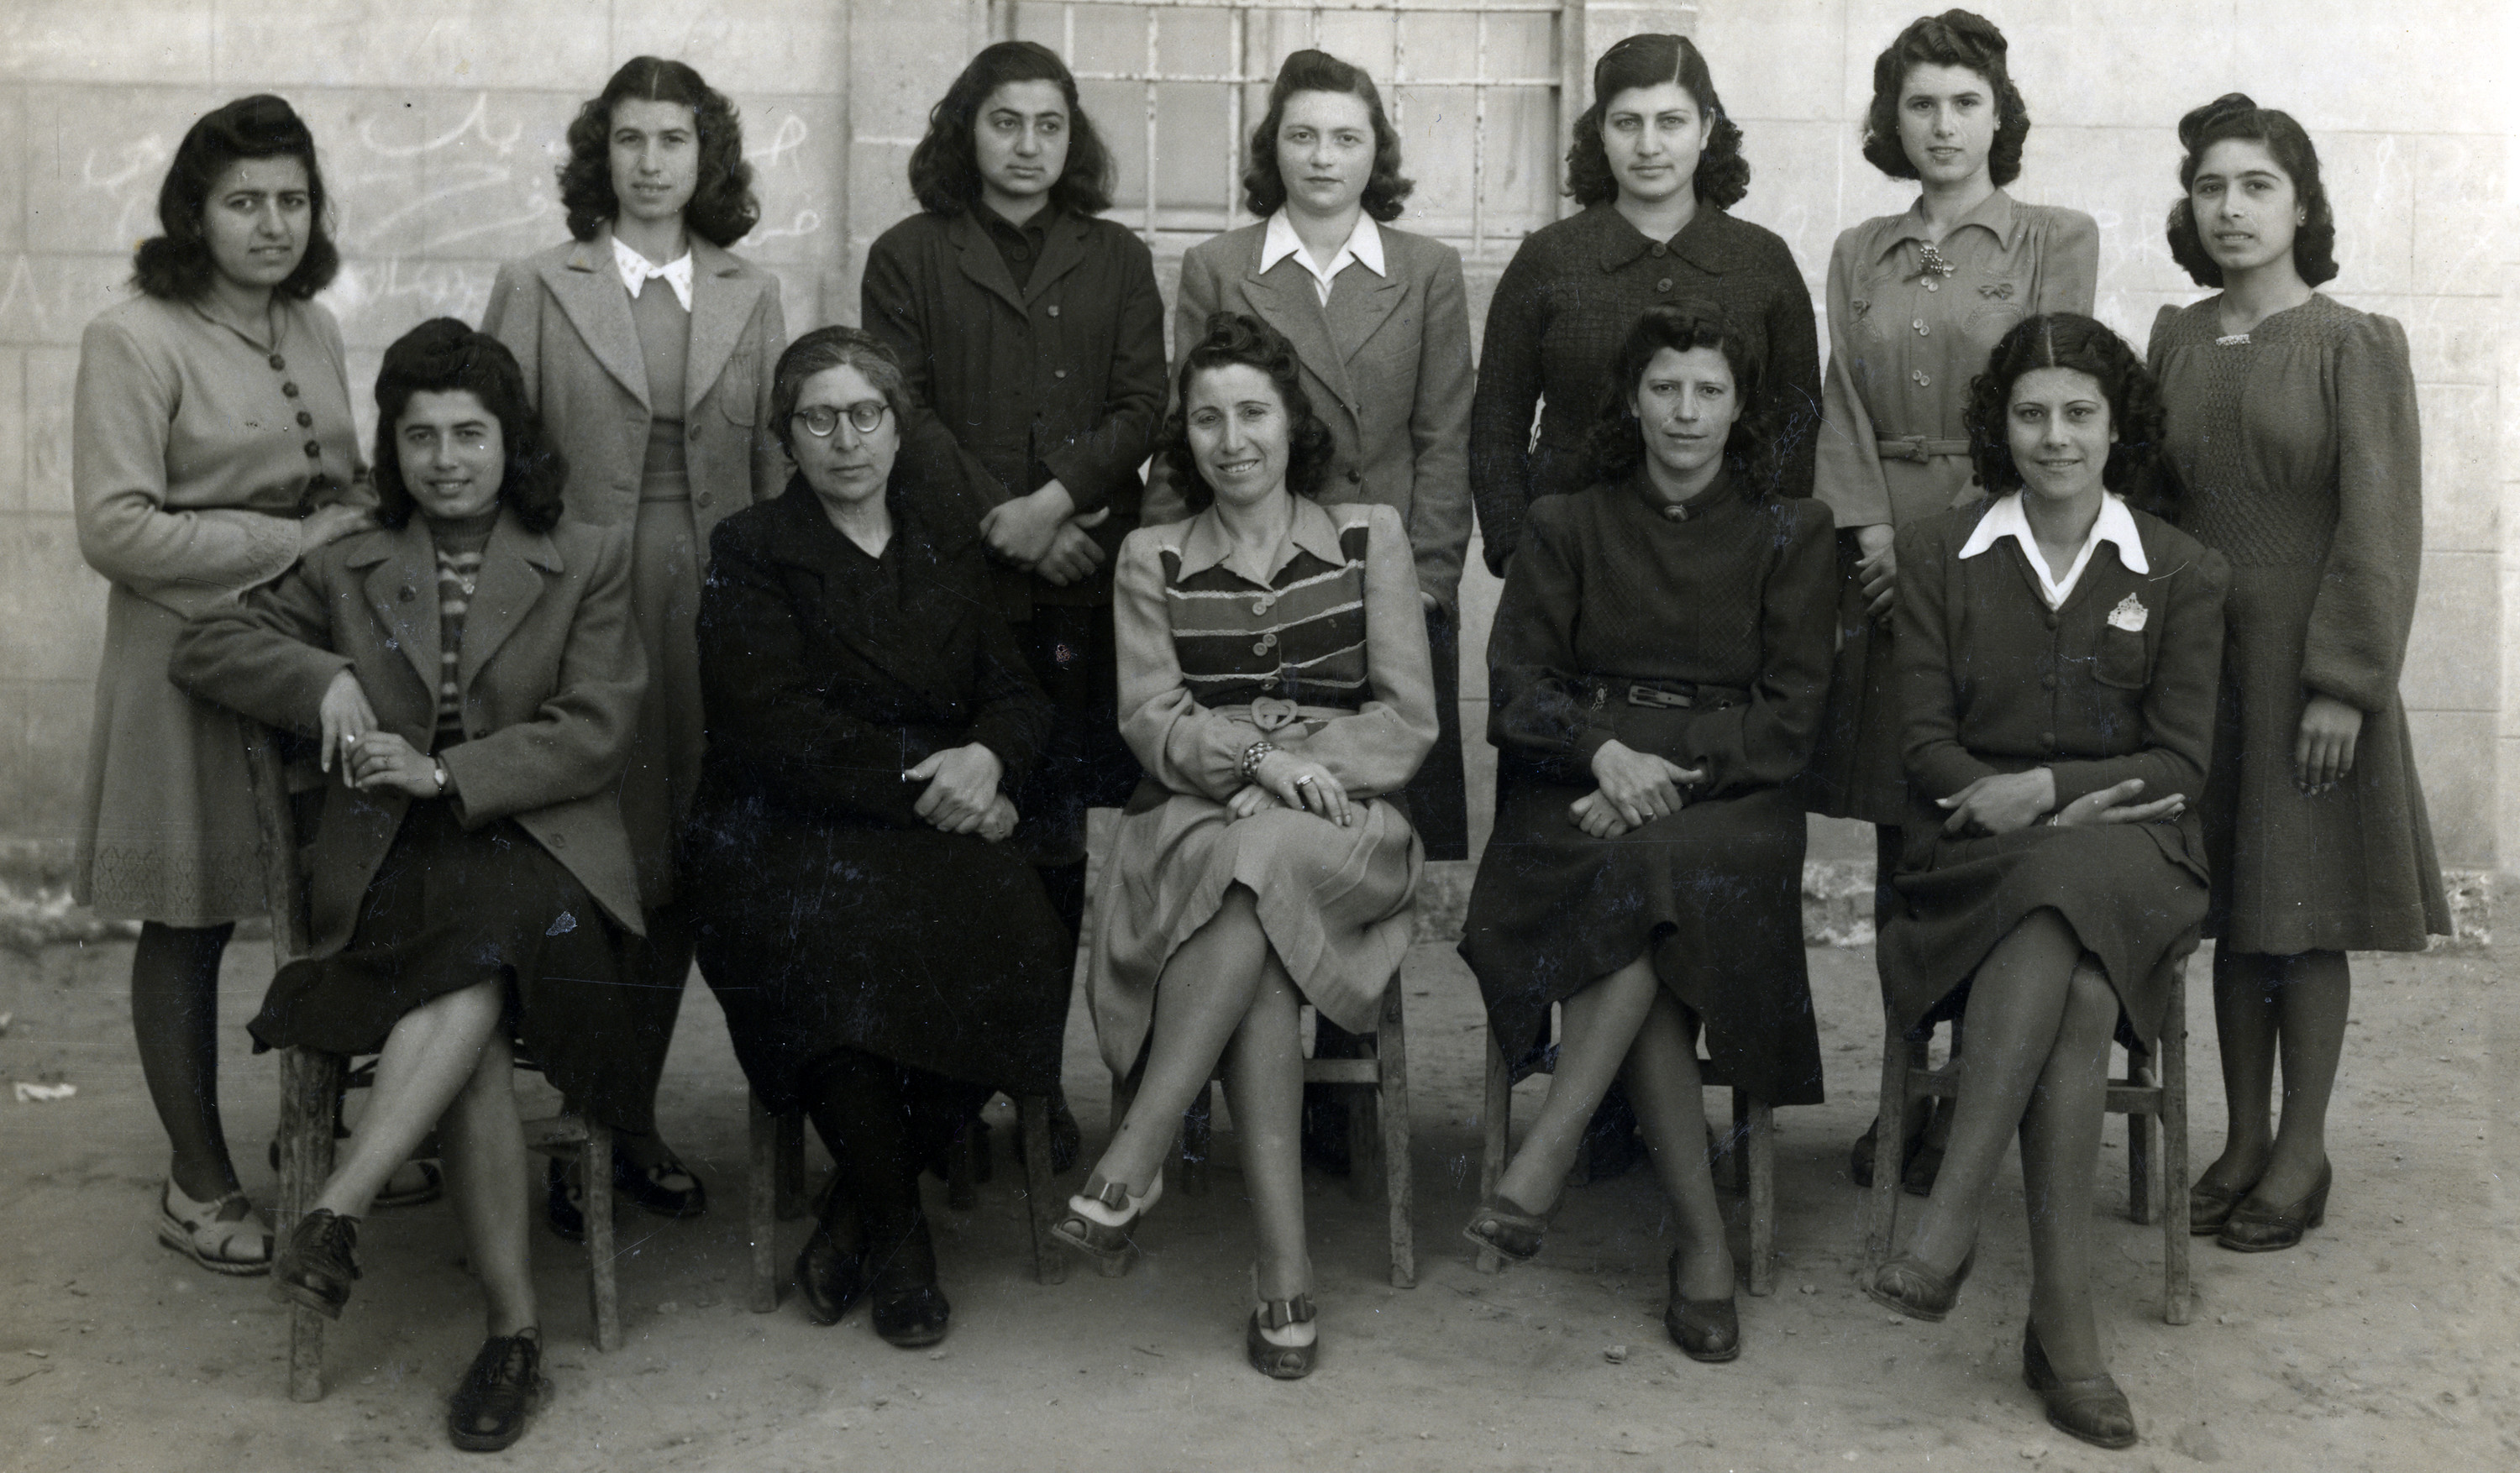 Group photo of students in a Greek Orthodox school in Jaffa in 1945.  Among those pictured is the teacher Jenny Noam (nee Ezratty), top row fourth from the left.